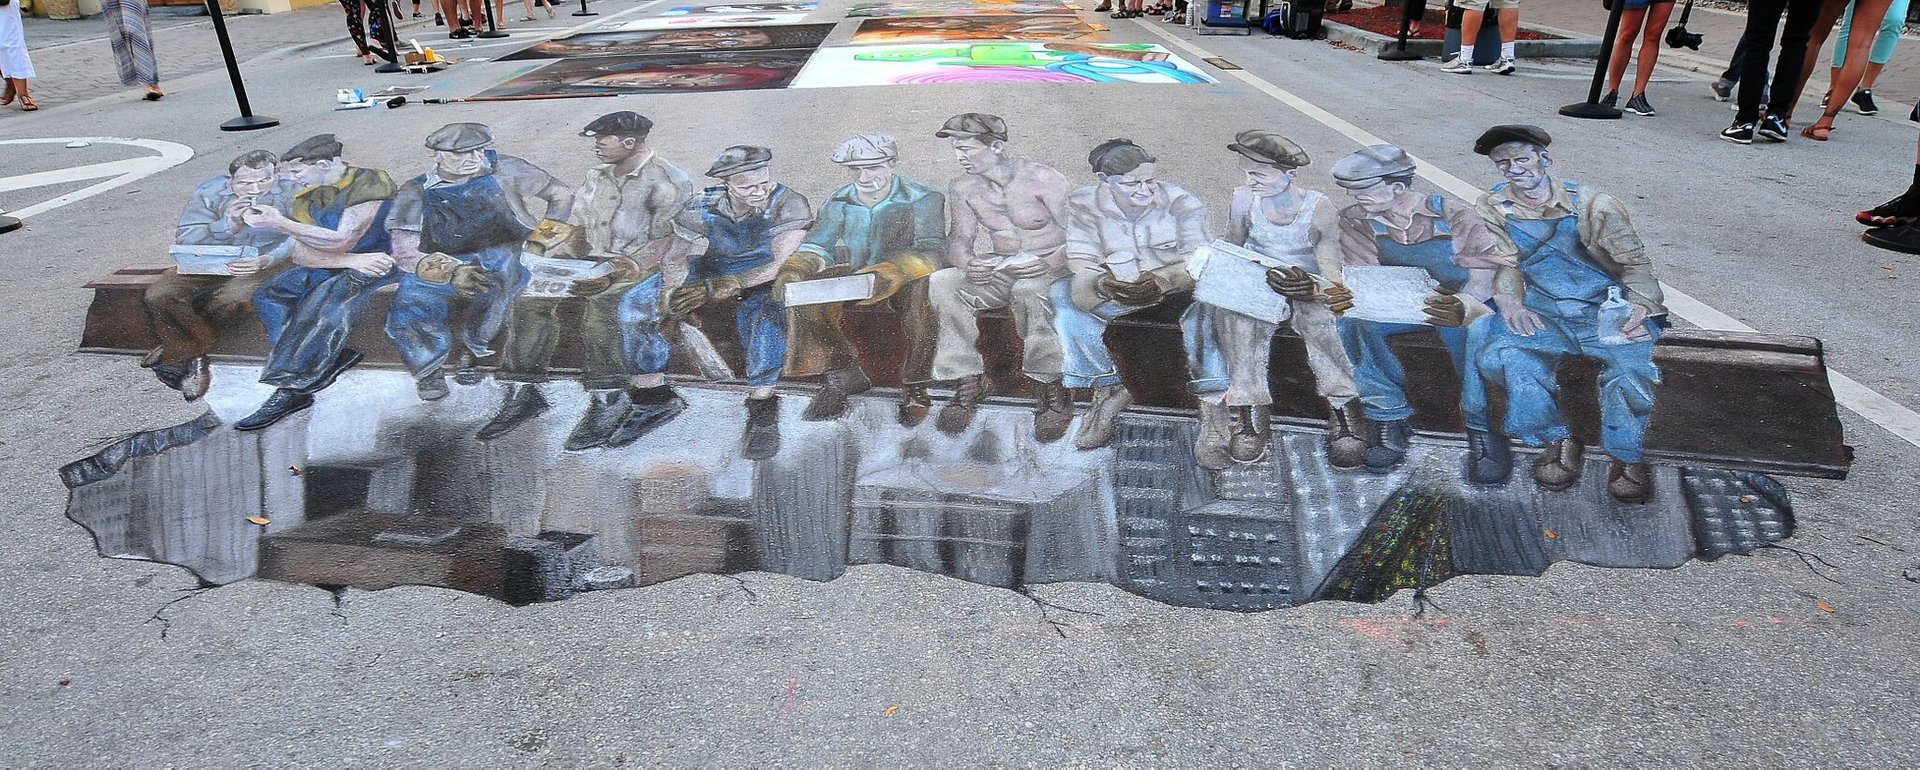 Best time to see Lake Worth Street Painting Festival in Florida 2020